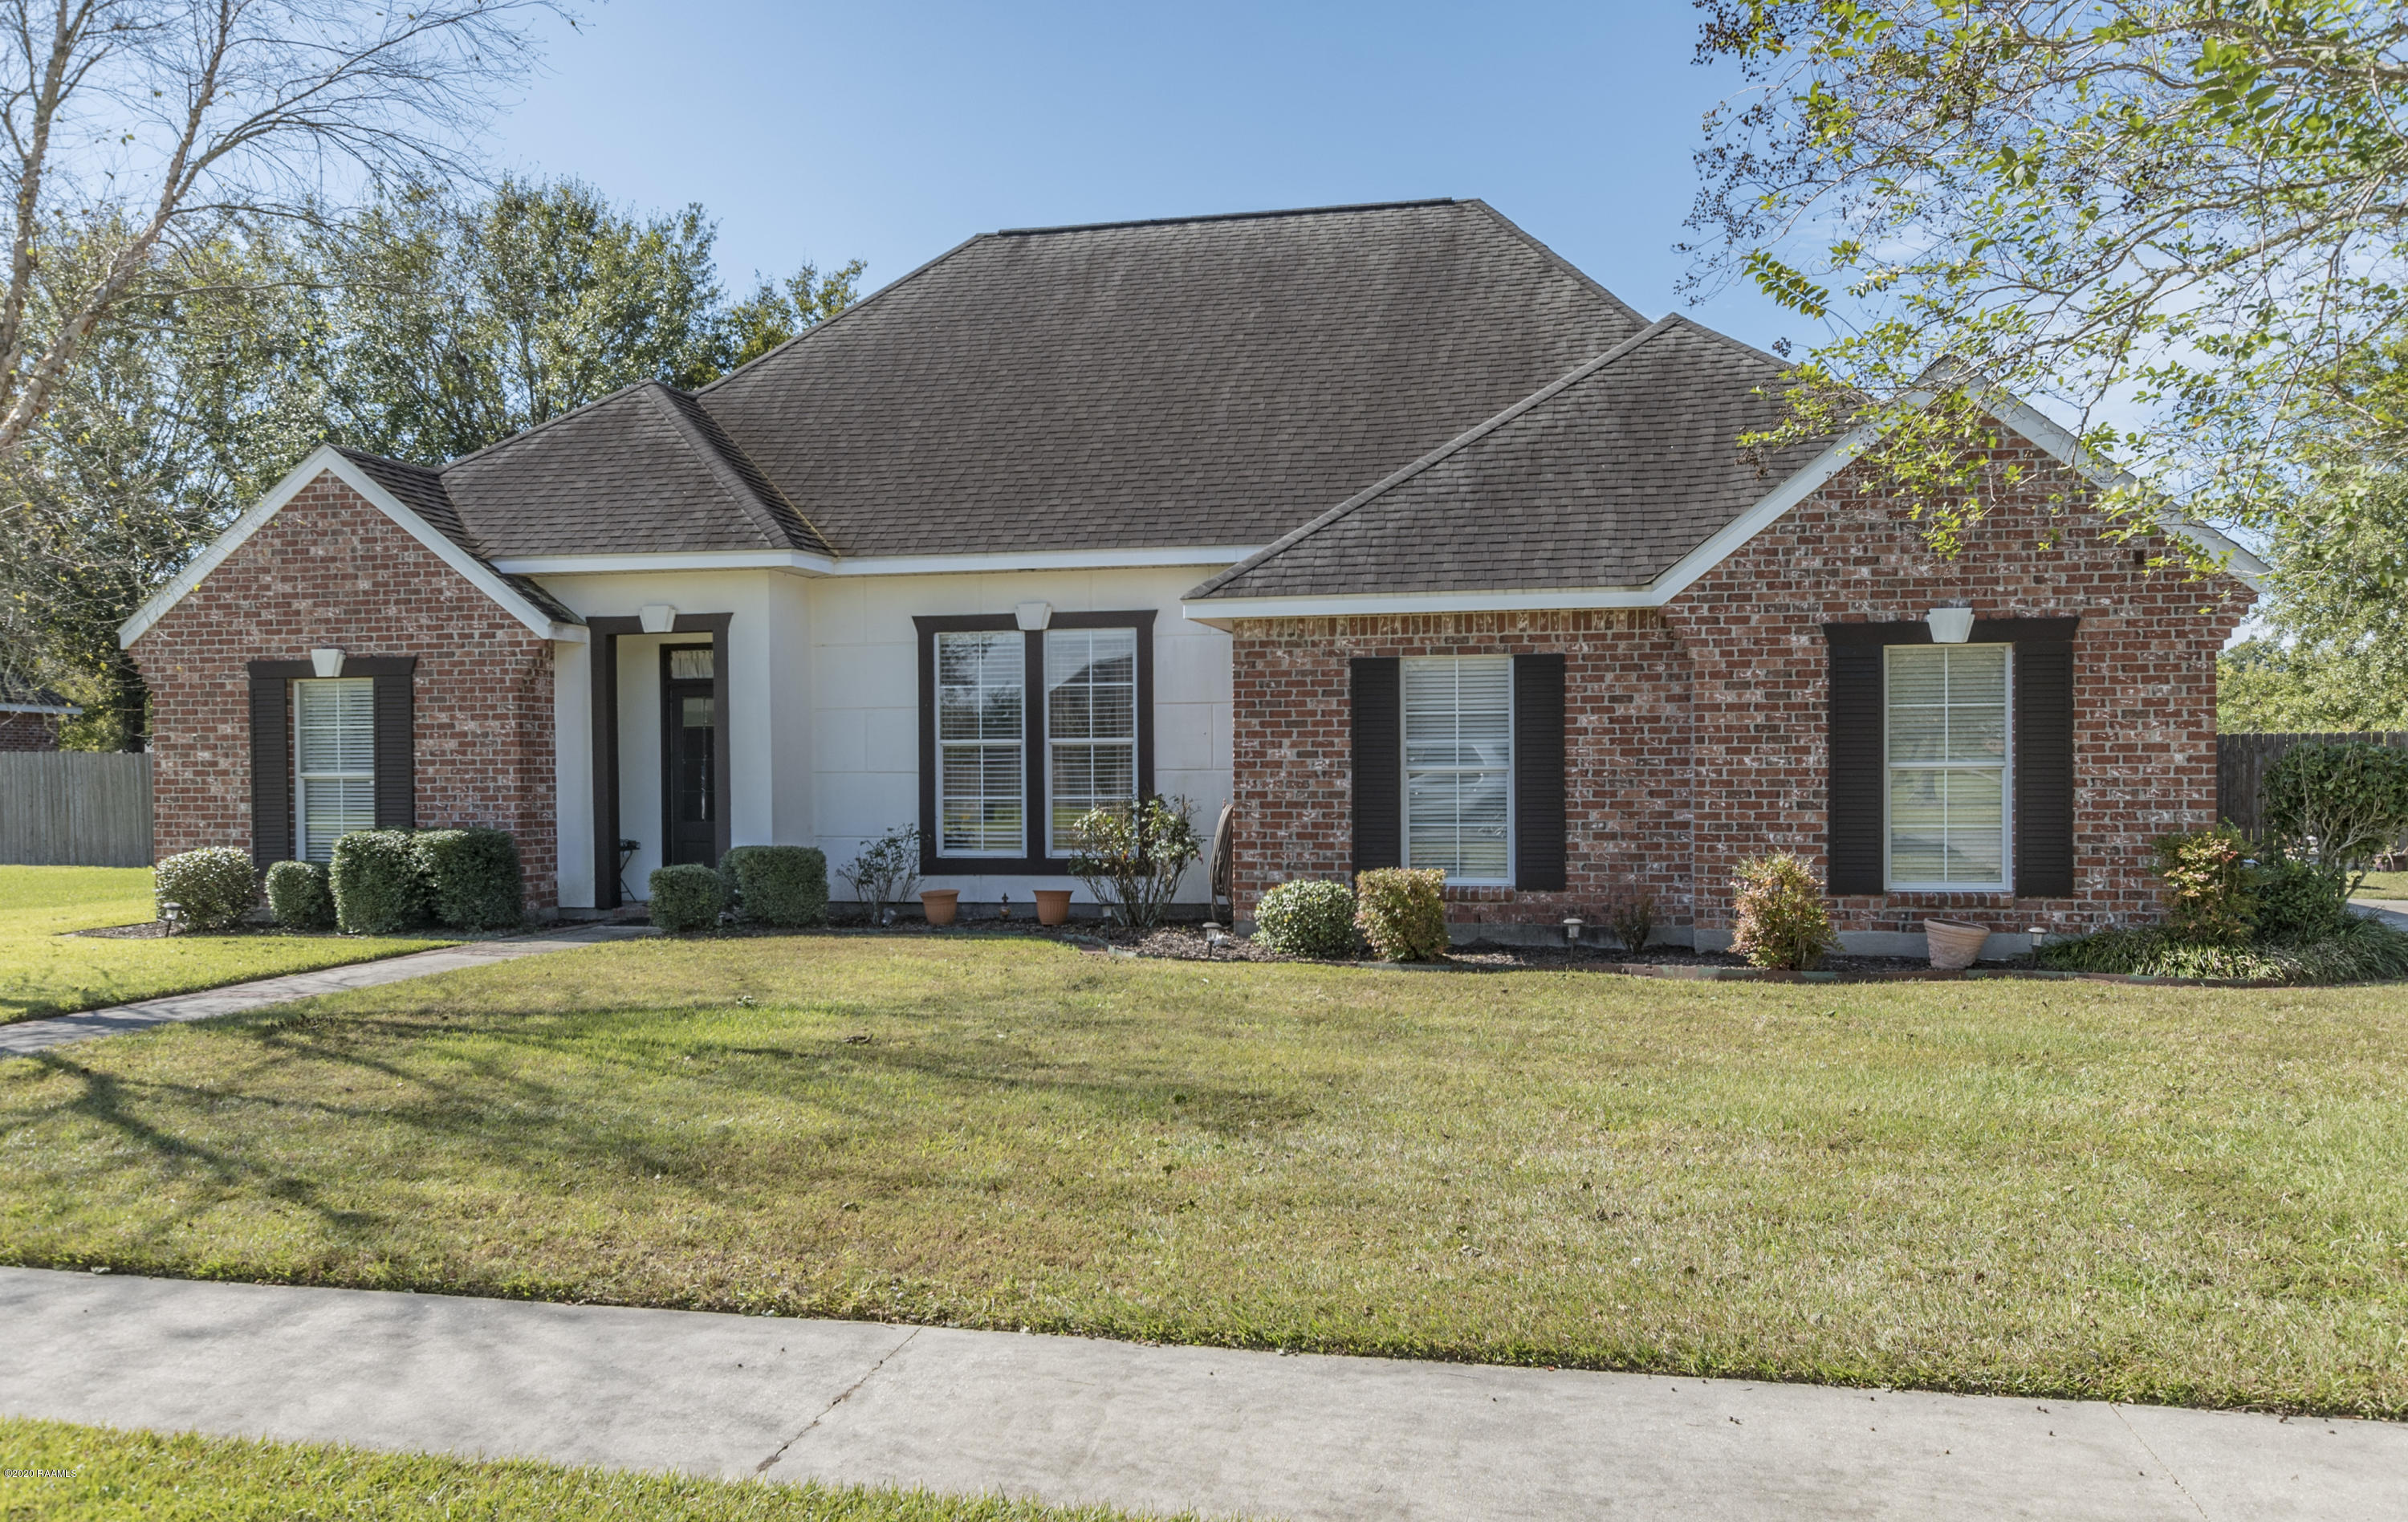 1042 Myrtle Bend, Breaux Bridge, LA 70517 Photo #1